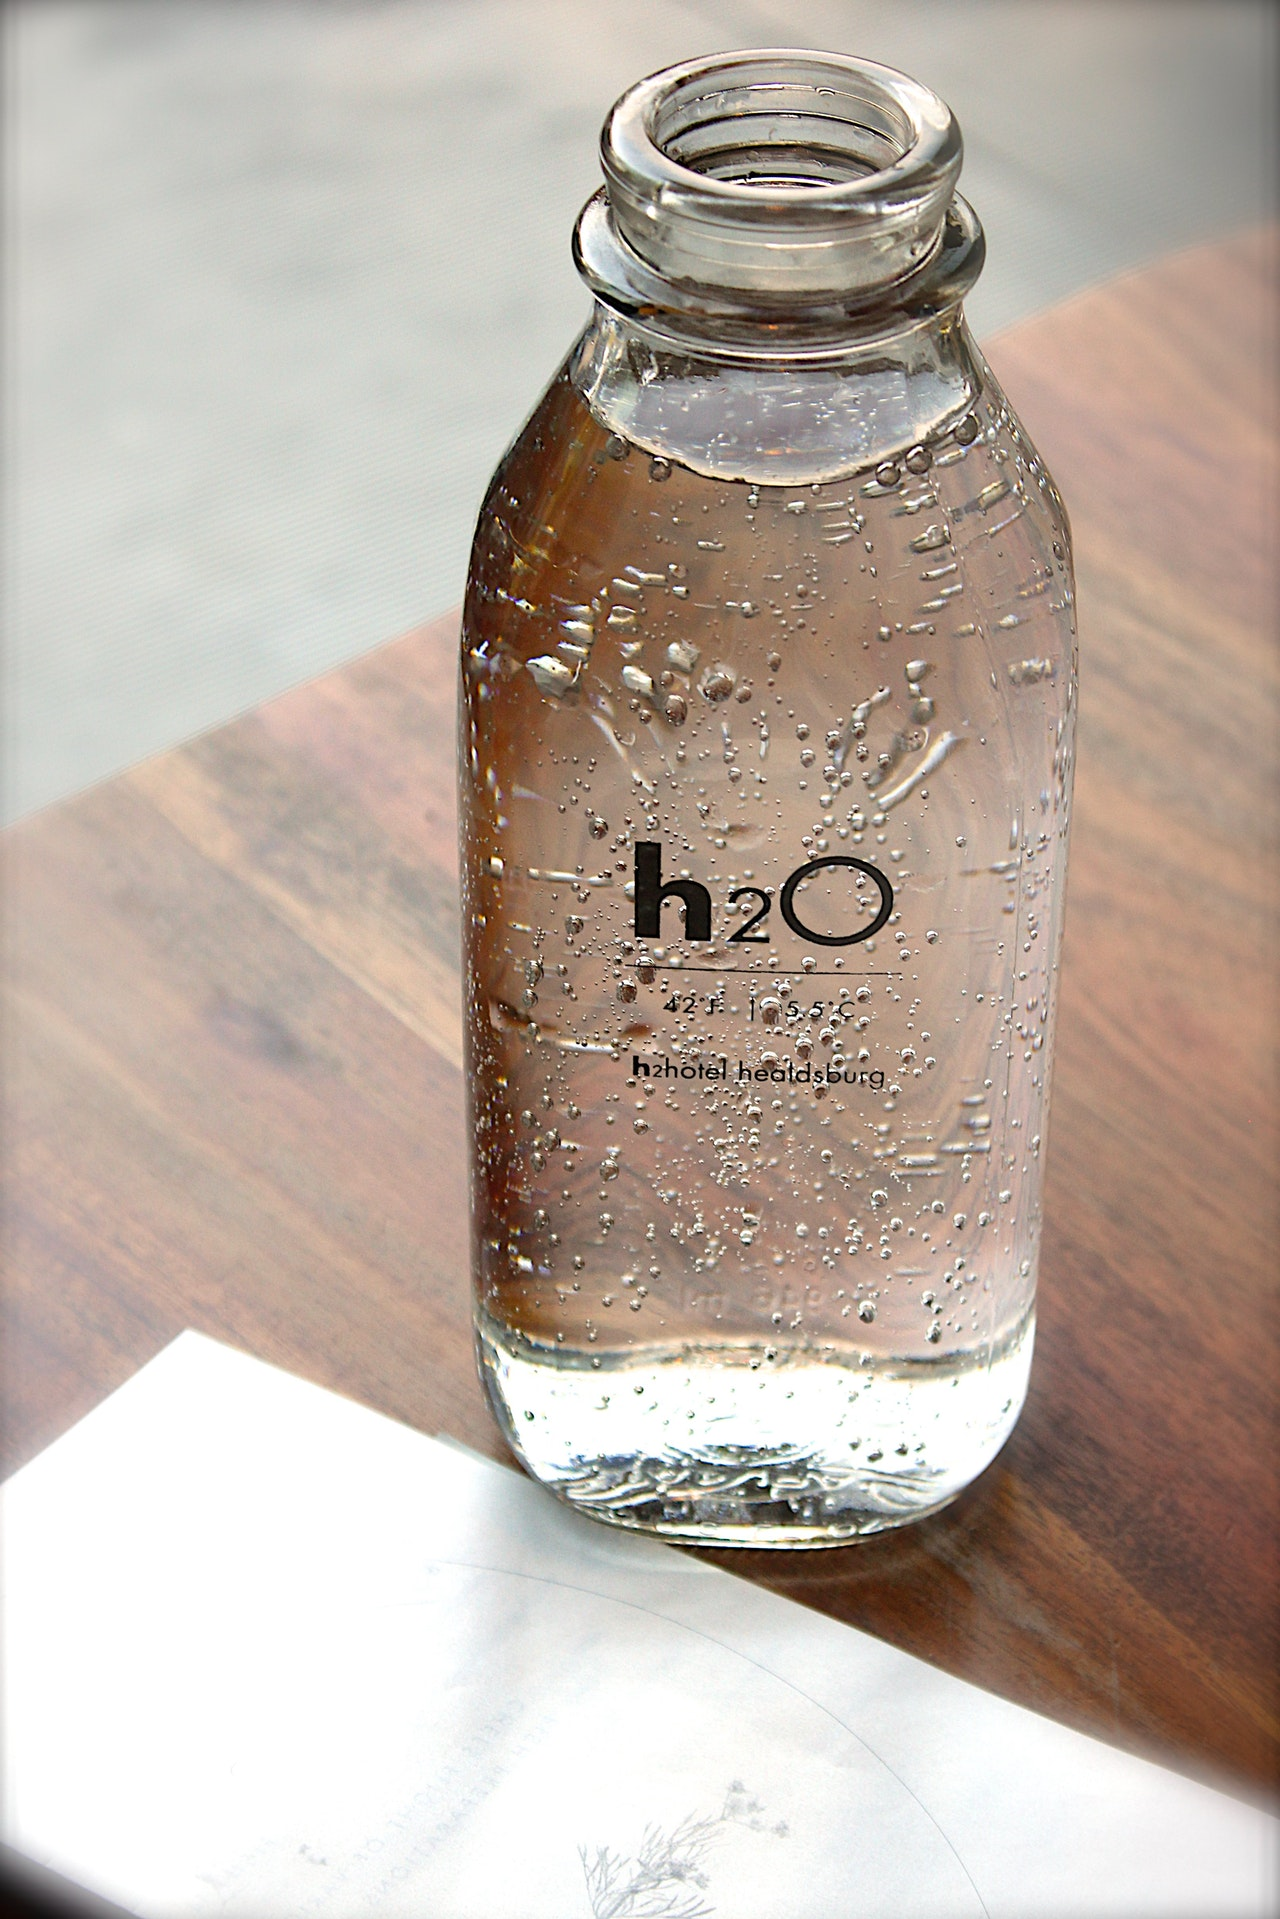 water in a clear water bottle that says h2o